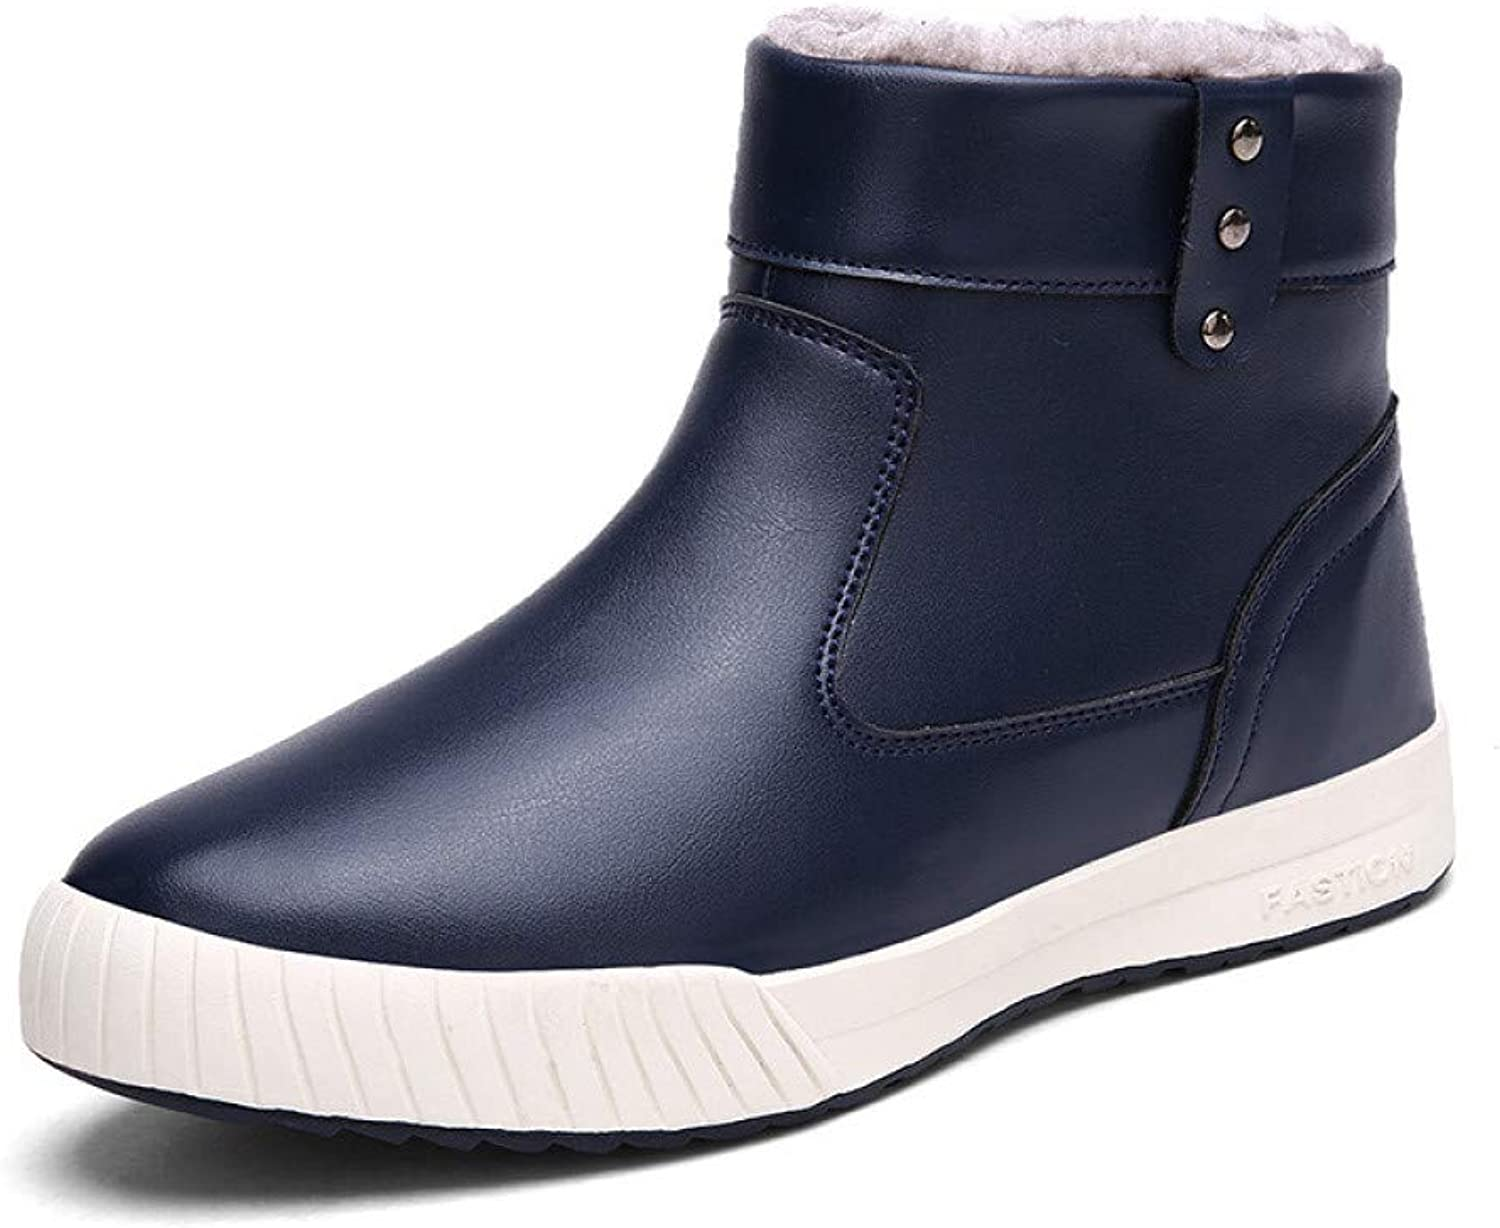 FHCGMX New Winter Snow Boots Men Fashion Casual Warm Mens Boots Big Size 39-45 Slip On Zip Rubber Mens Snow shoes